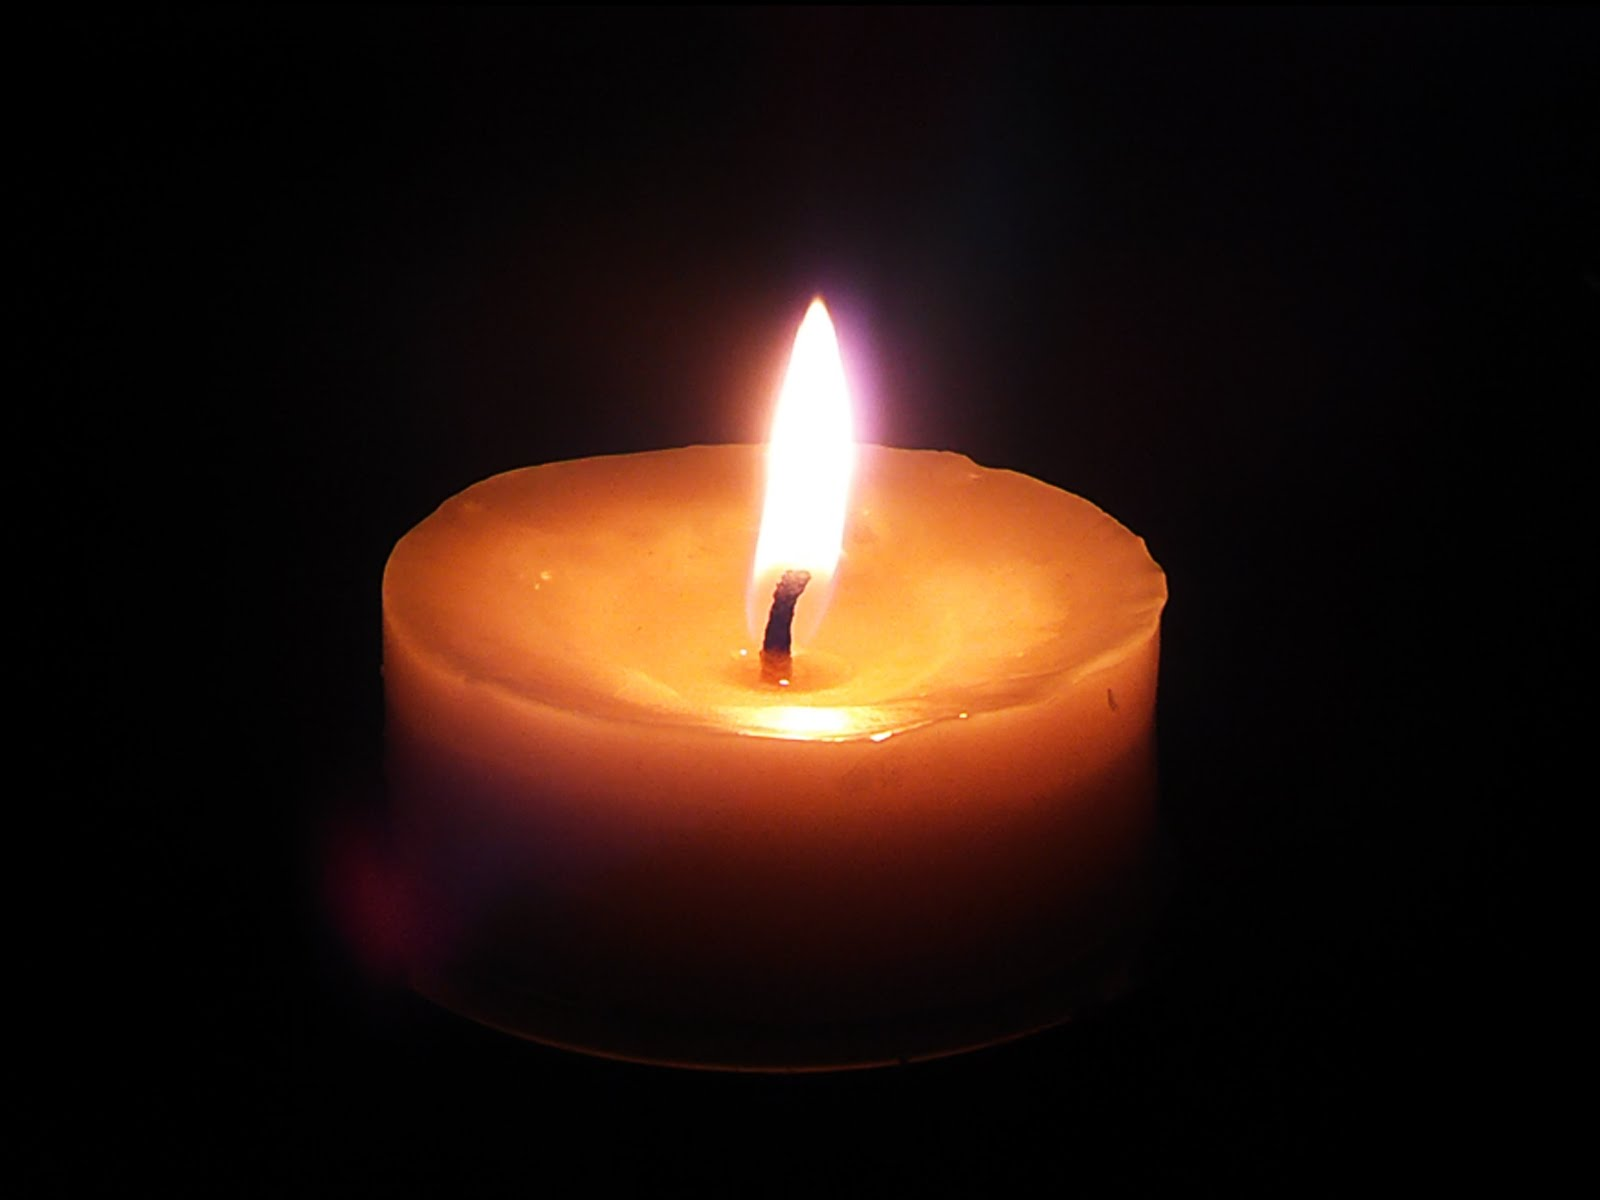 Relaxing Candle Burning flame 10 minutes HD video BEAUTIFUL - YouTube